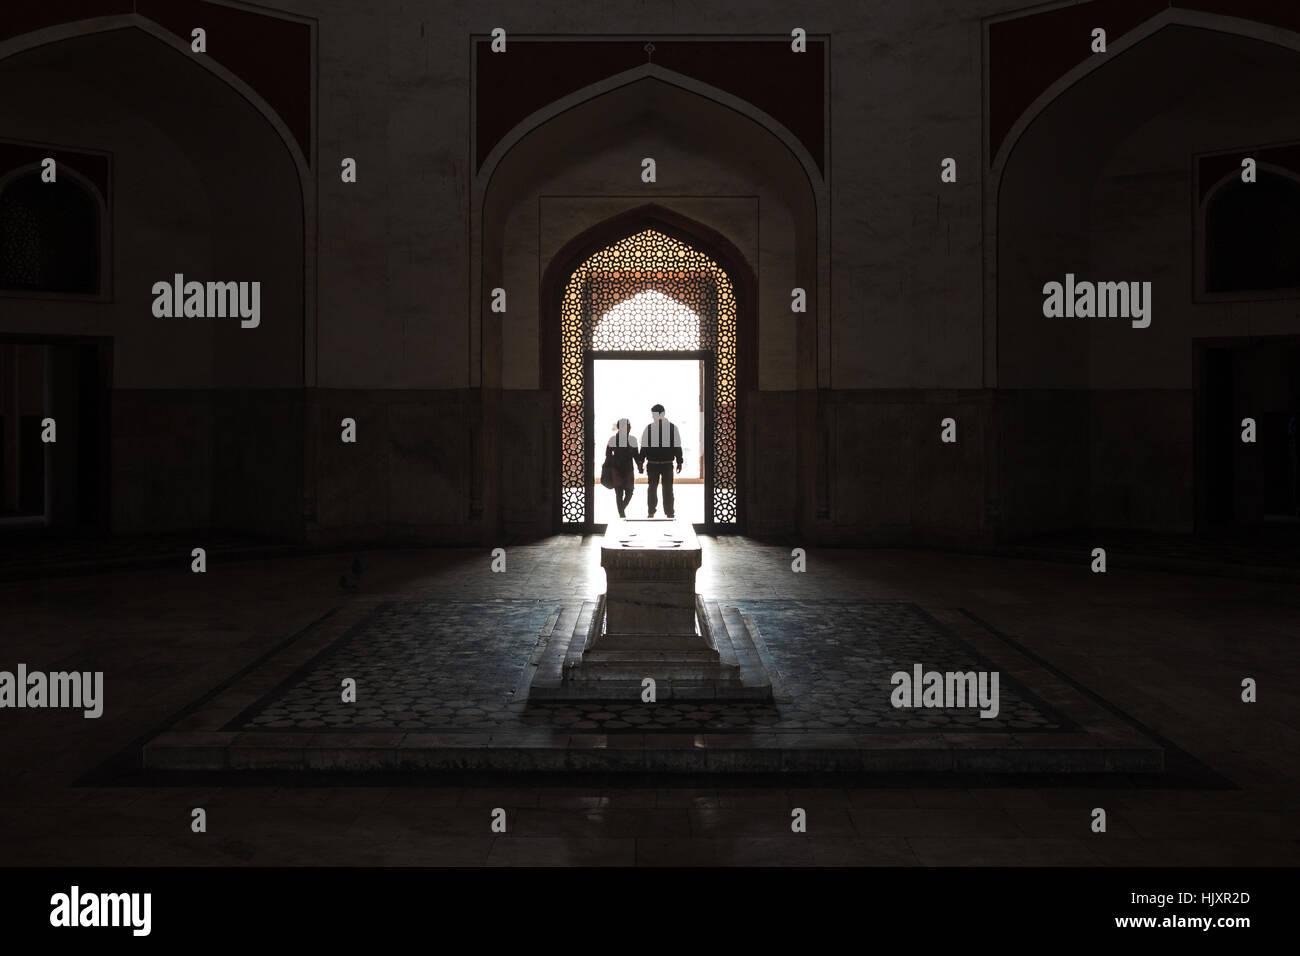 A couple enter Humayun's Tomb in New Delhi, India, the tomb of the Mughal Emperor Humayun. - Stock Image